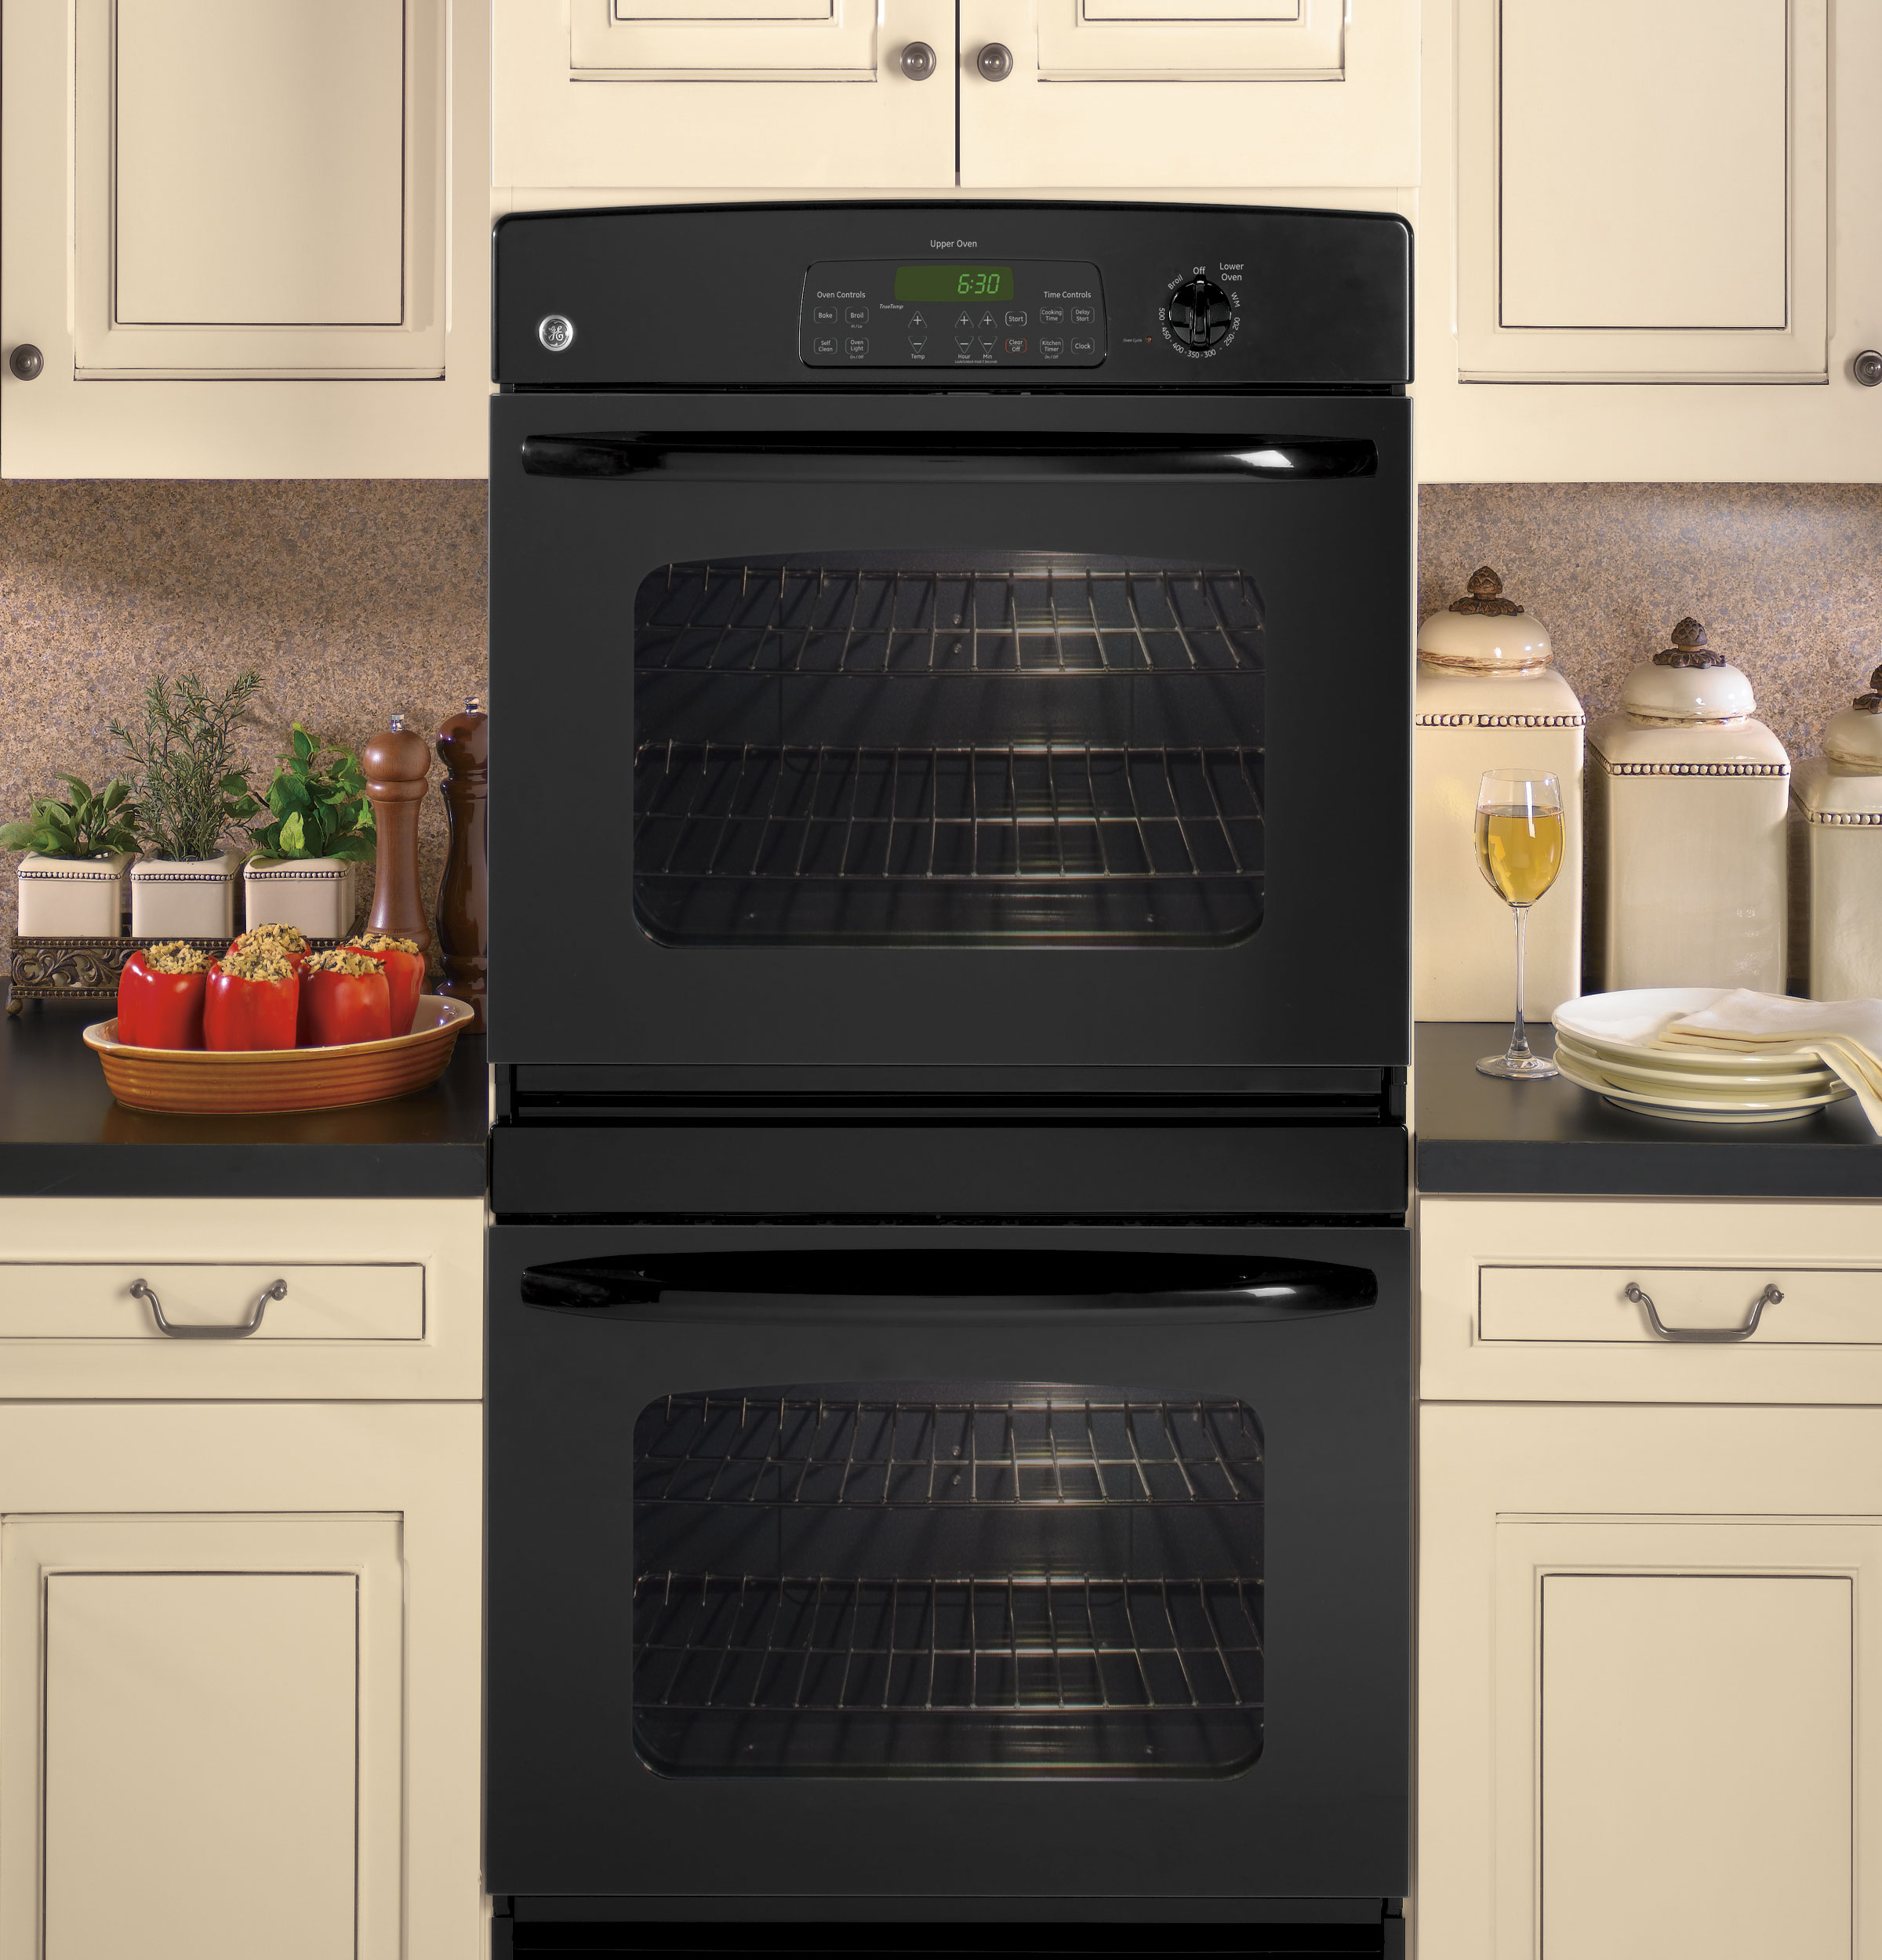 Ge 30 Built In Double Wall Oven Jtp35dpbb Liances